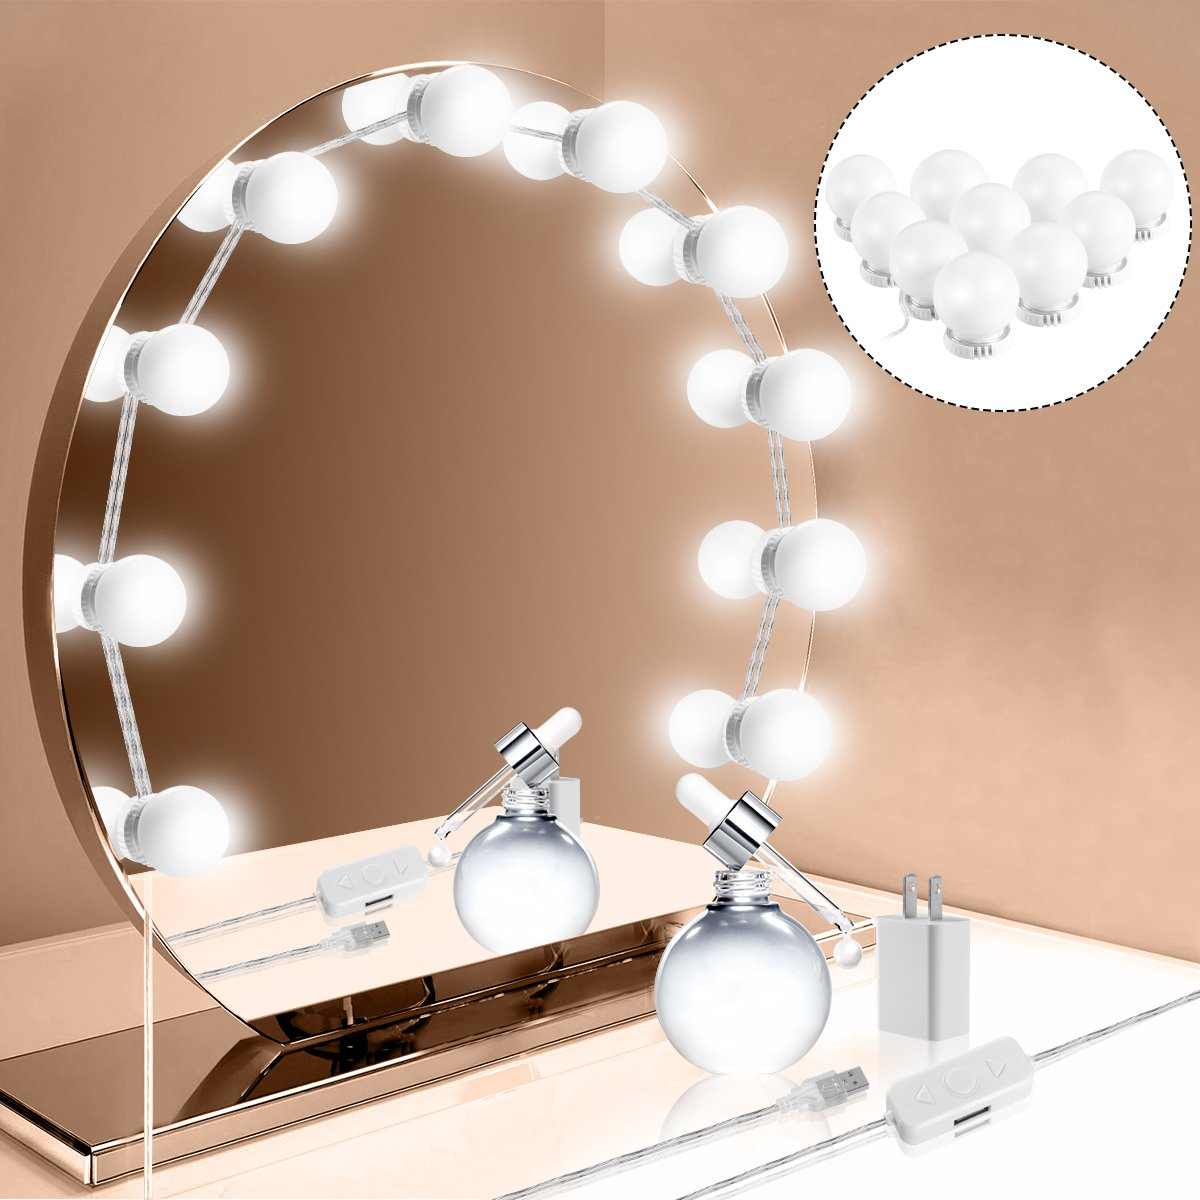 Hollywood Style LED Vanity Mirror Lights Kit, Vanity Lights Makeup Lighting Fixture Strip with 10 Dimmable Light Bulbs, Smart Dimmer, USB Adapter for Makeup Vanity Table Set in Dressing Room by oenbopo